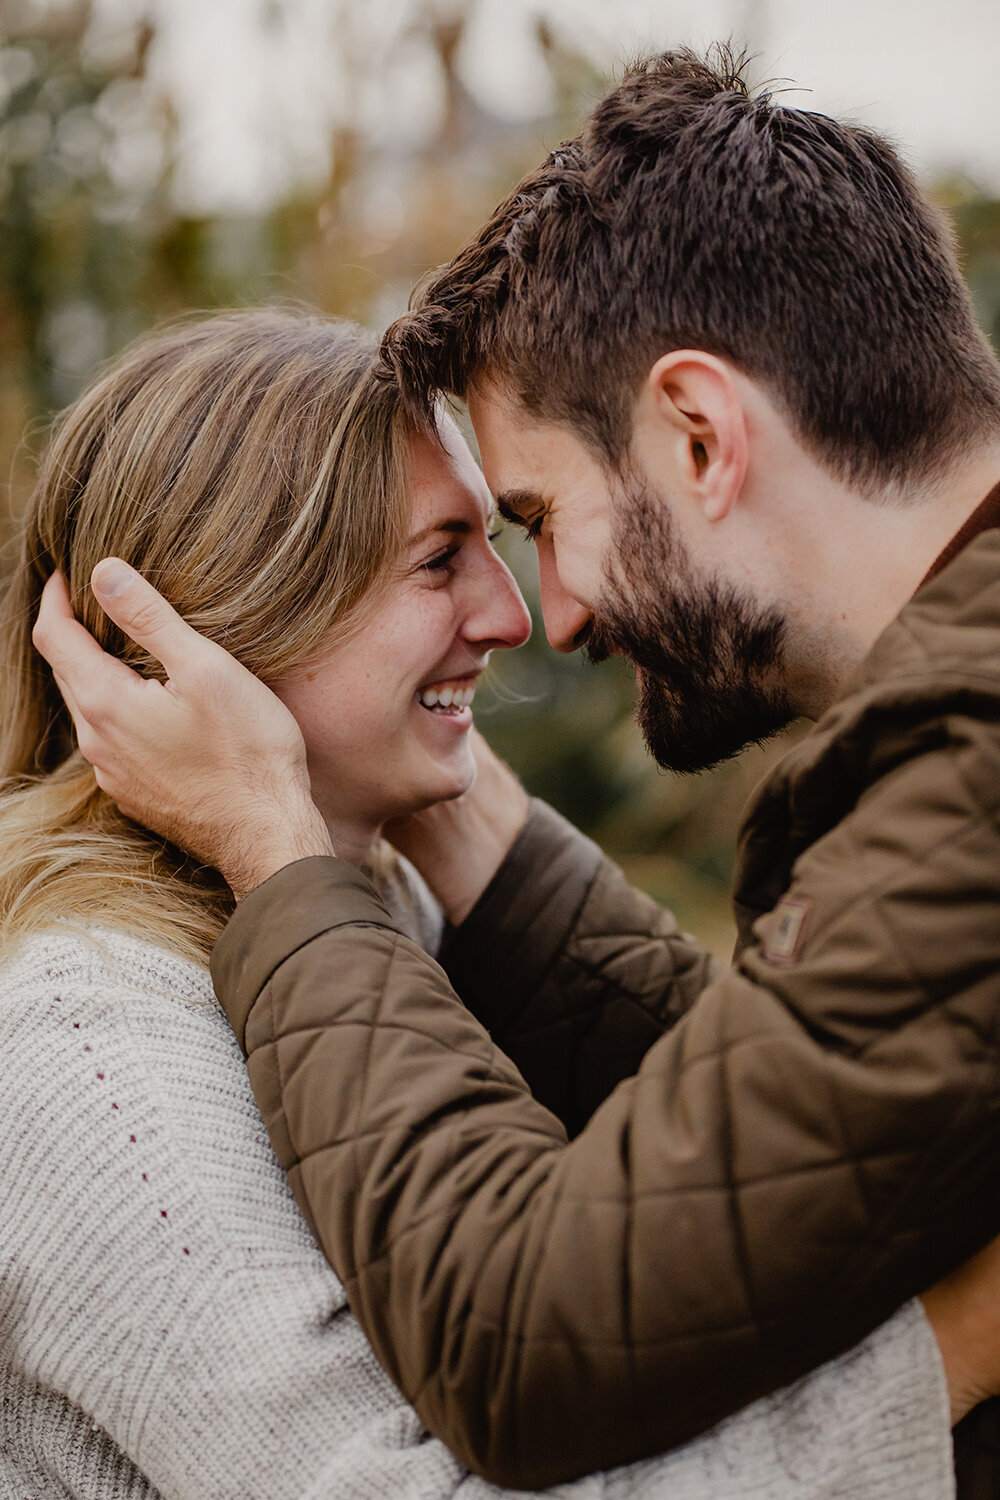 A newly engaged couple look at each other lovingly during a fall engagement session in New Jersey.